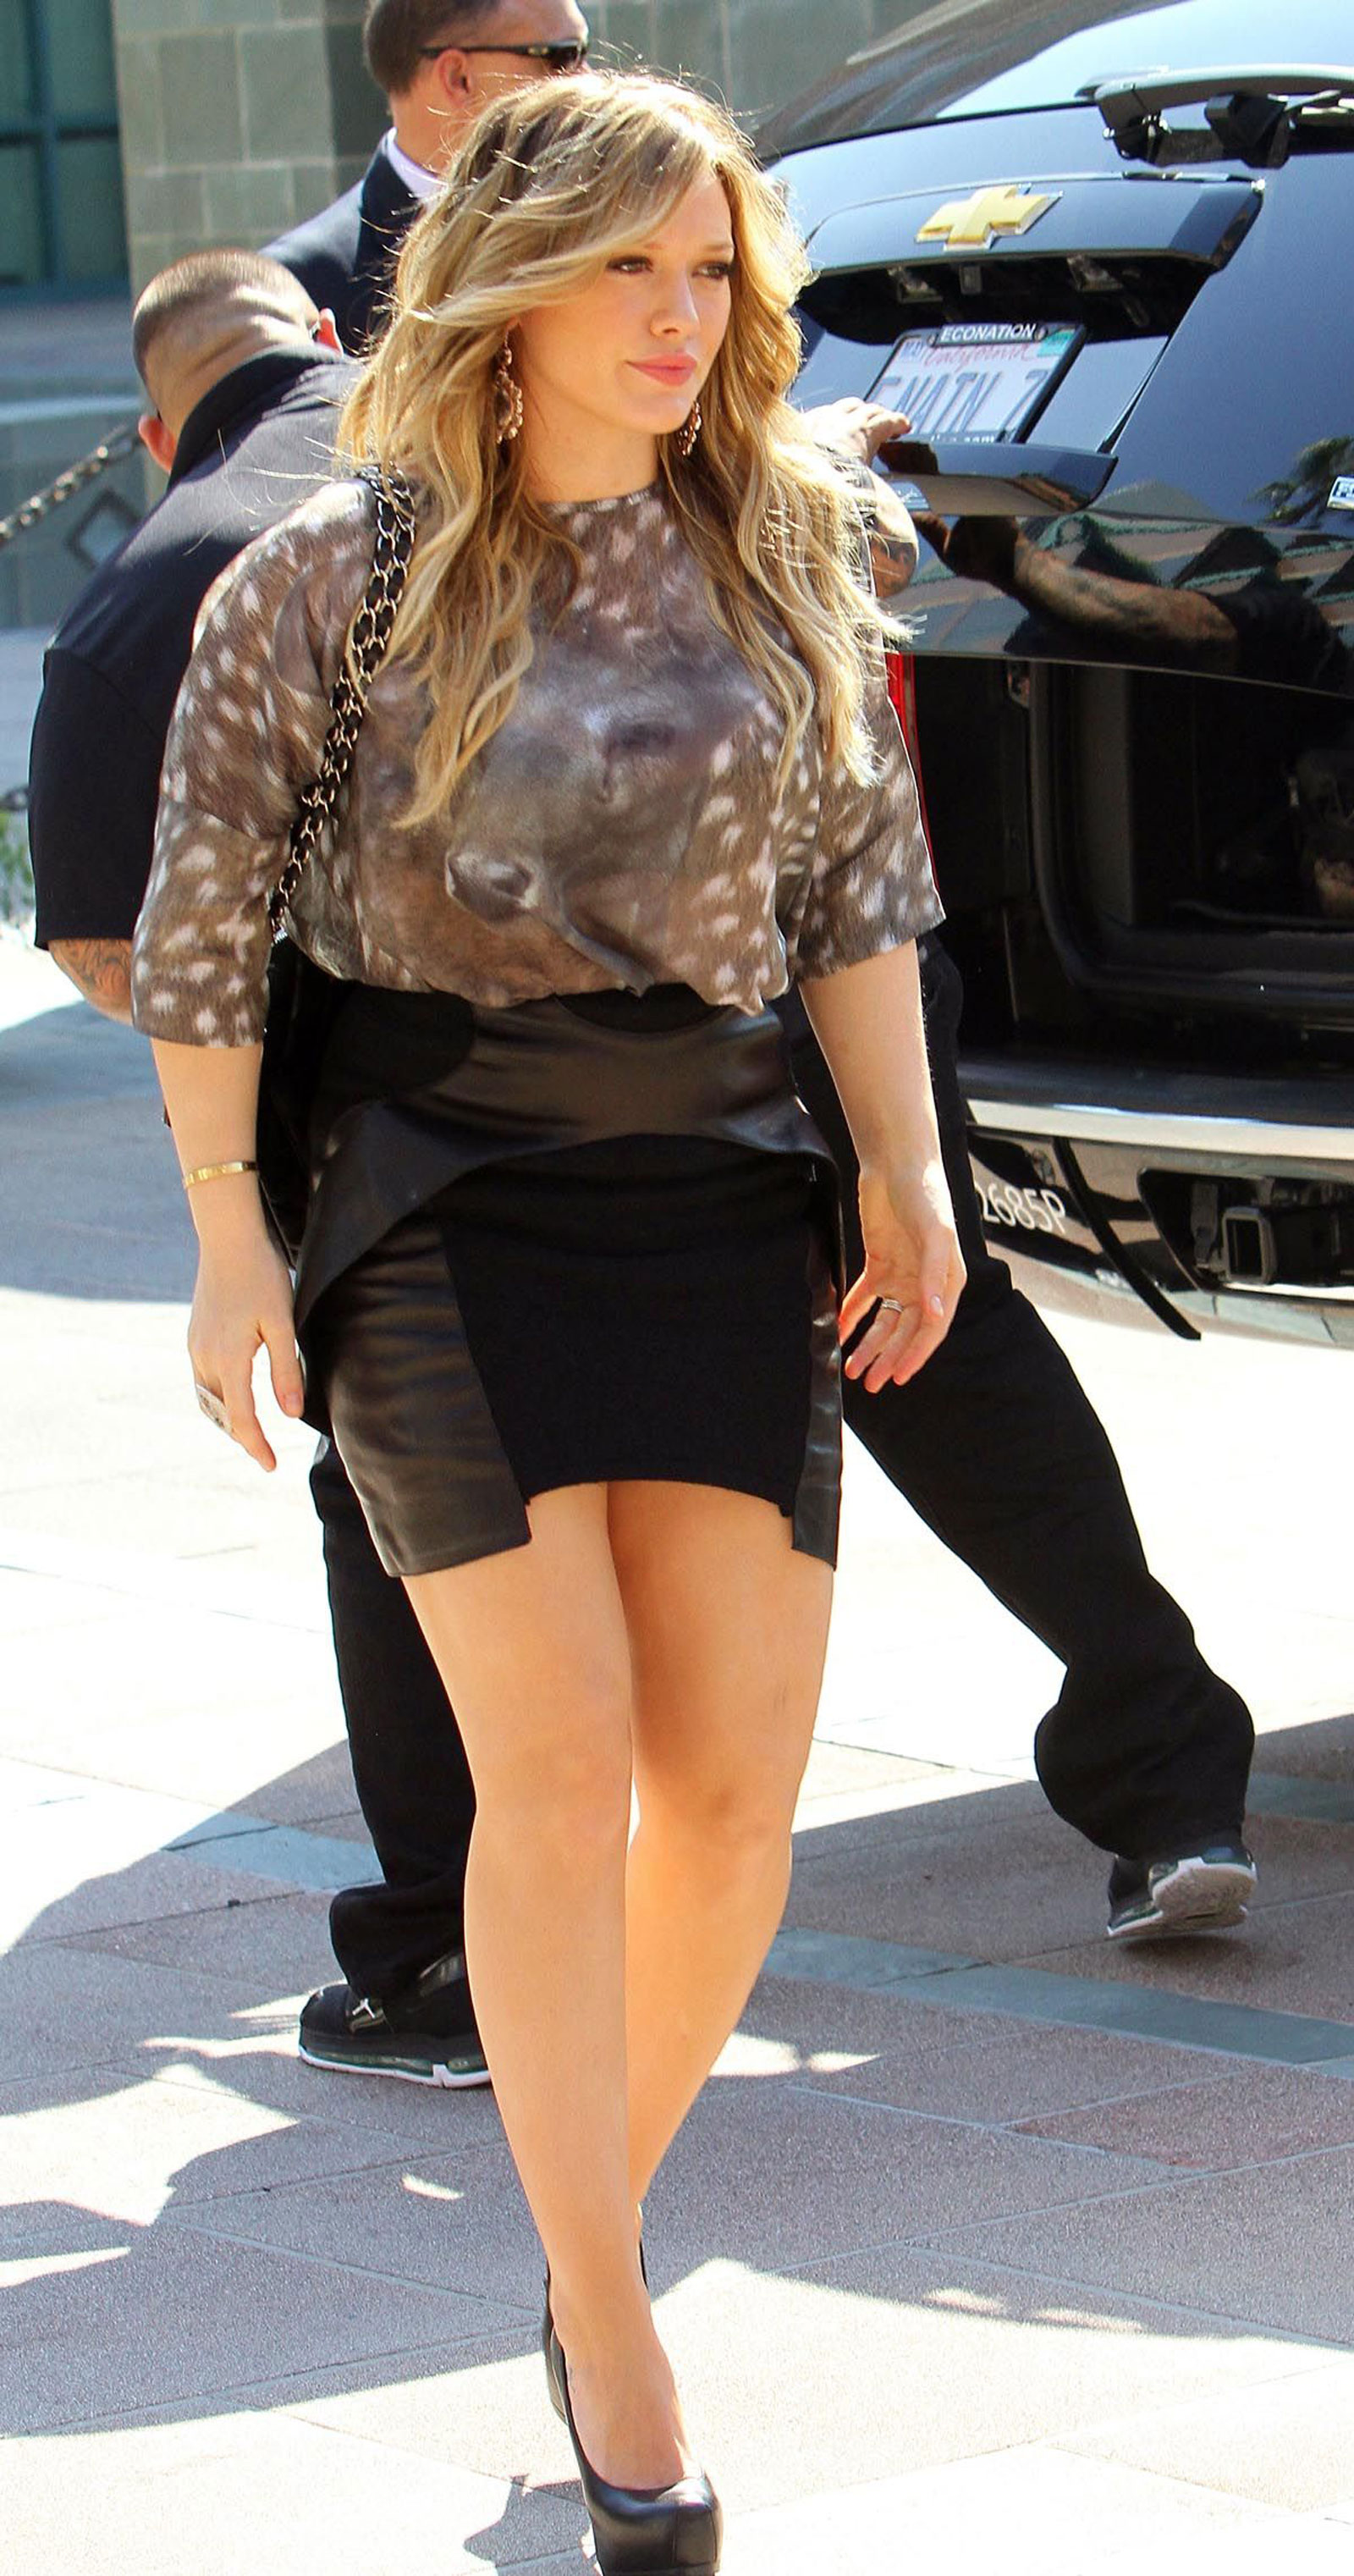 Afraid, hilary duff mini skirt are not